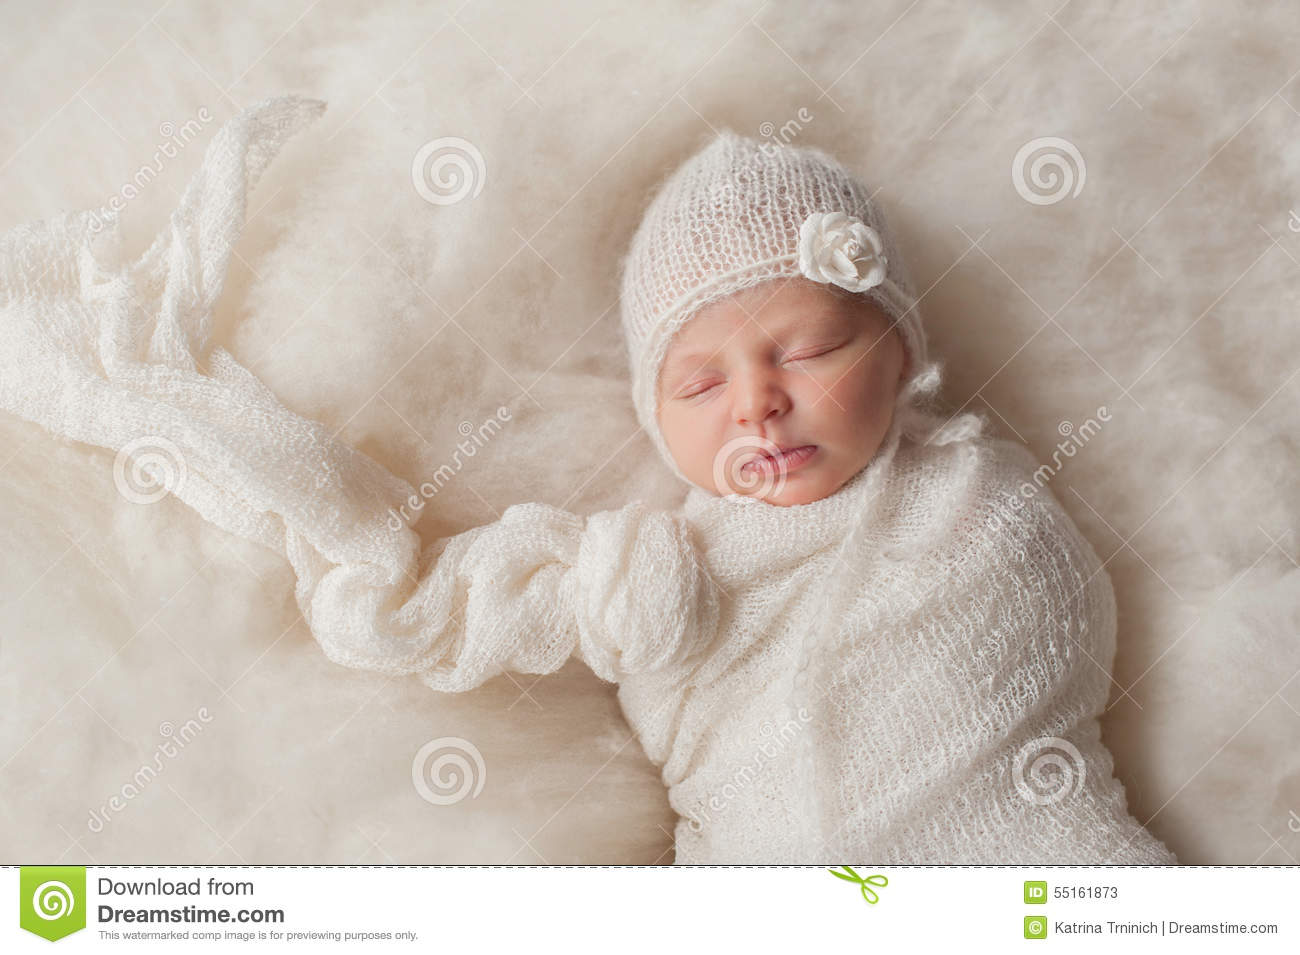 Newborn Baby Girl Wearing A White Knitted Bonnet Stock Image - Image ... 35e72a3a26f